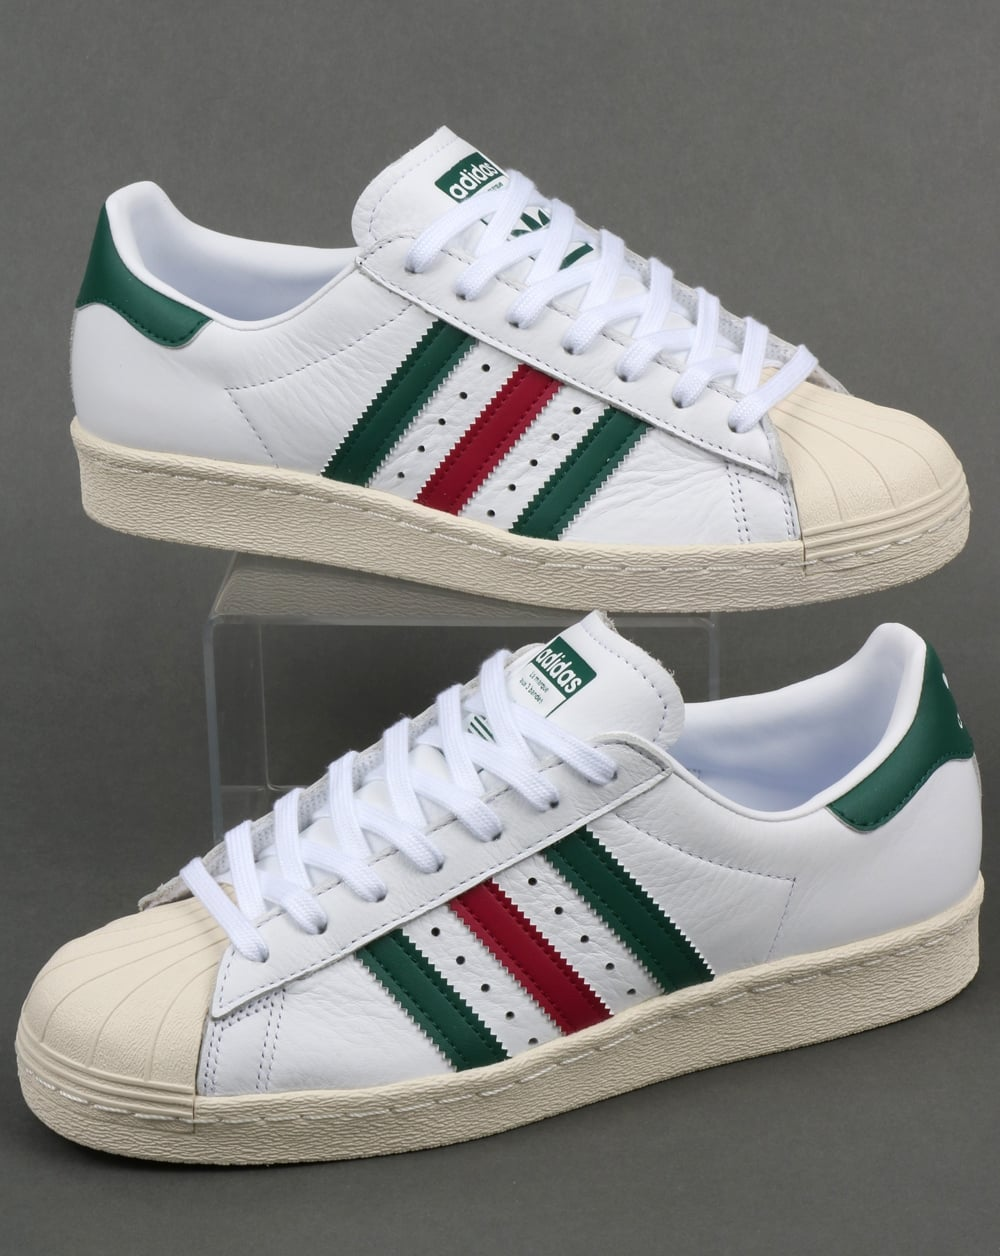 Adidas Superstar 80s Trainers White/Green/